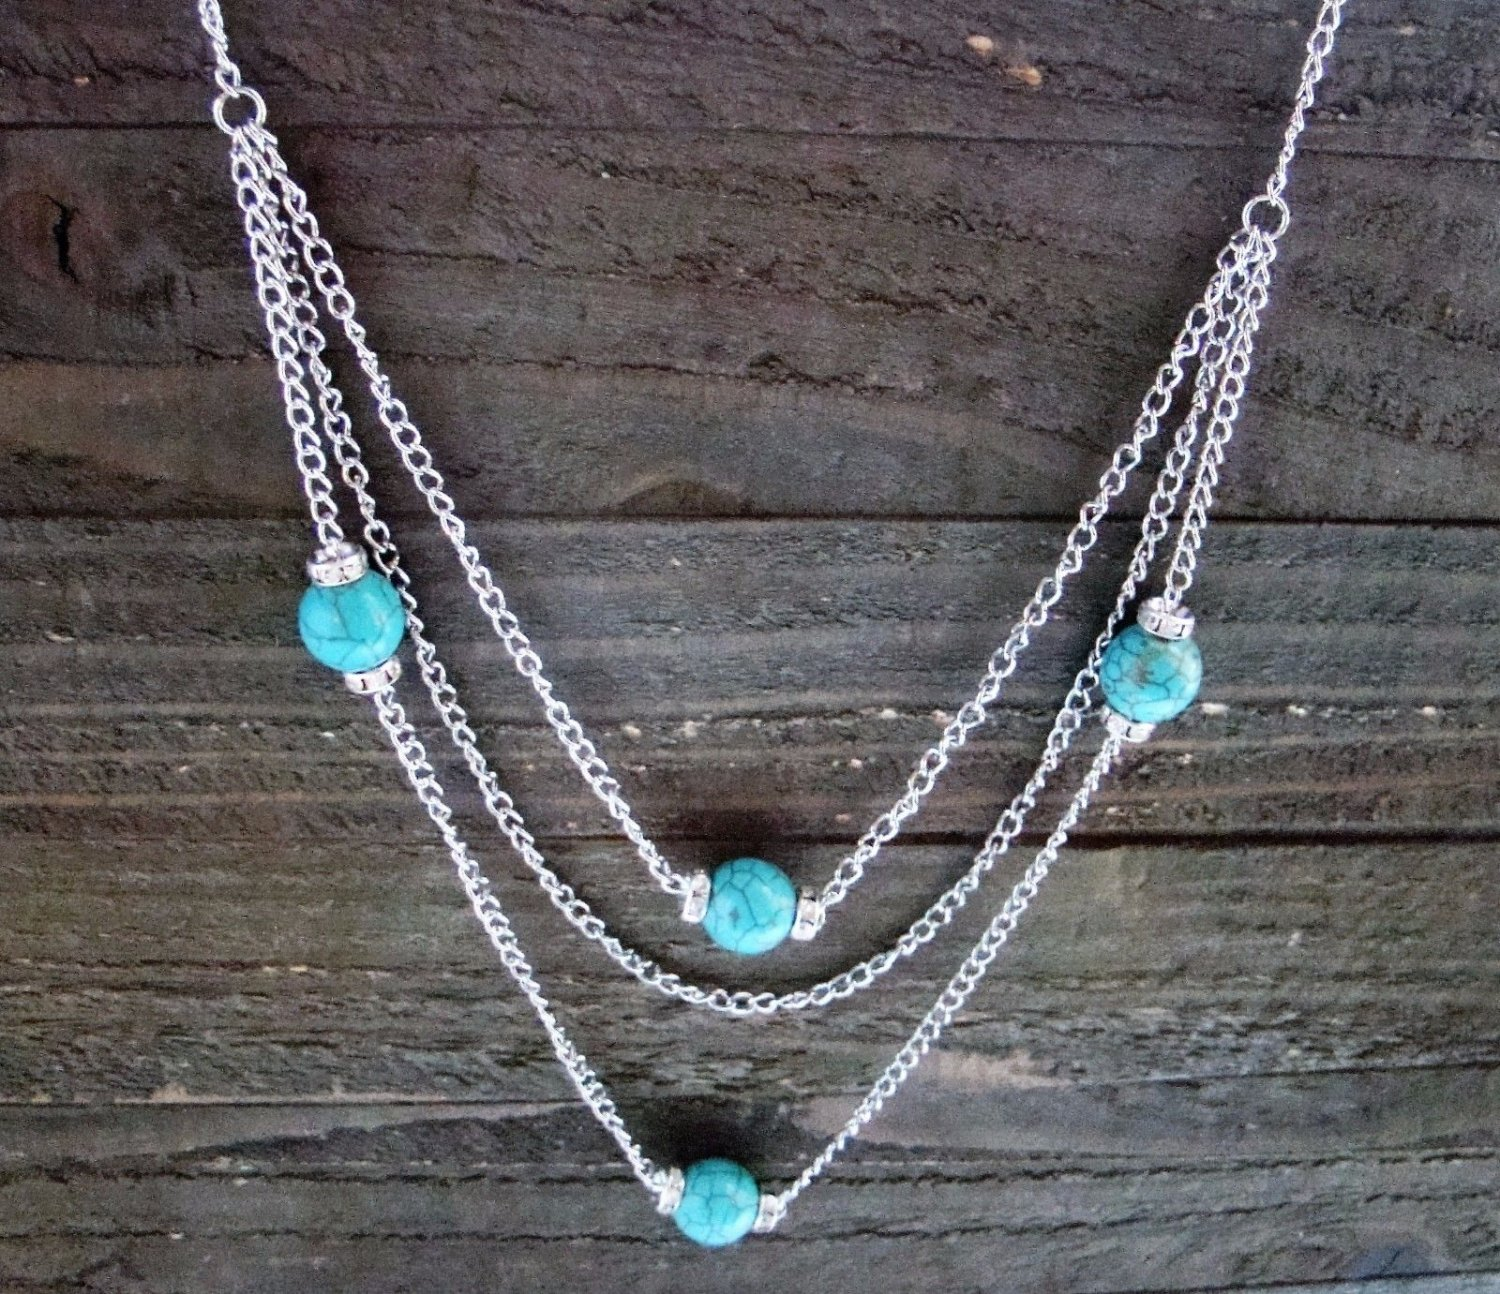 """Long 32"""" 3 Layer Multi Turquoise Bead Rhinestones Chain Necklace Cowgirl Fashion Jewelry"""